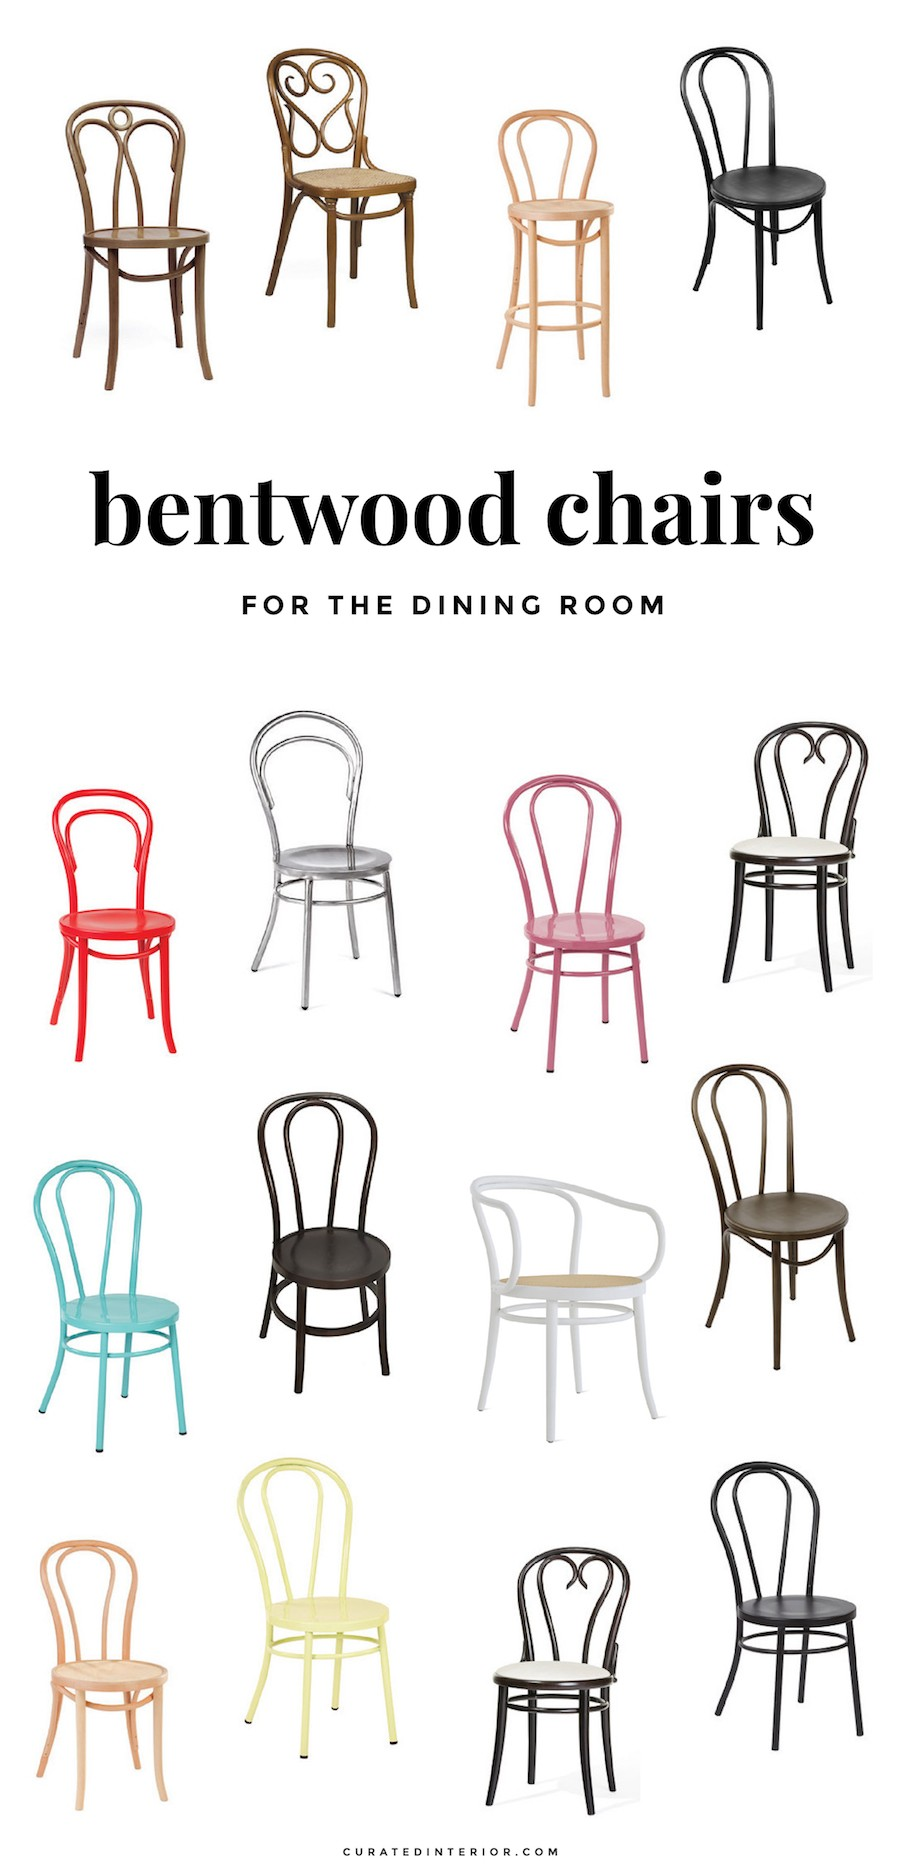 Bentwood chairs domino - Brown Bentwood Chairs With Sheepskin Throws Domino Brittany Ambridge